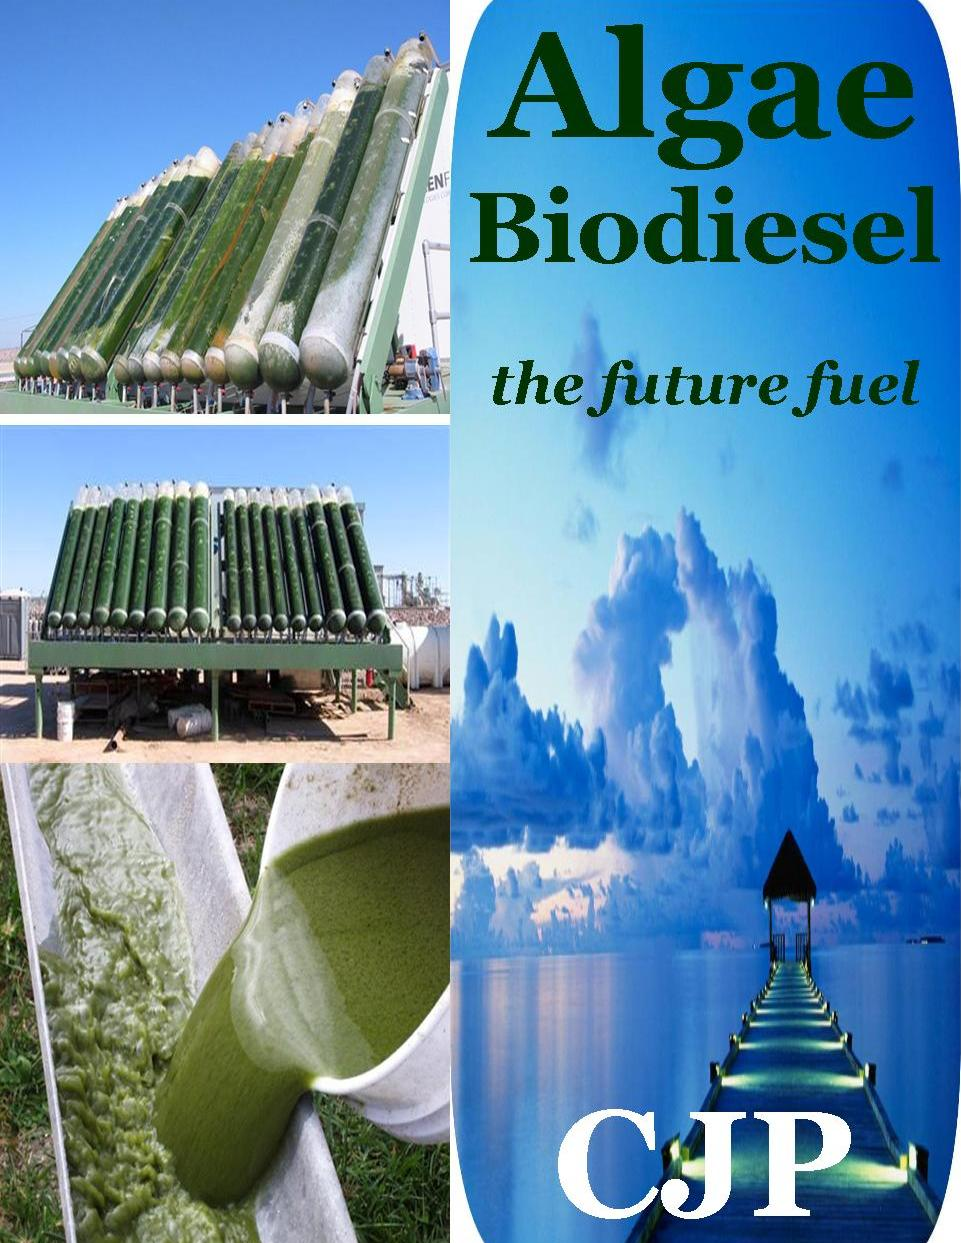 How algae could help solve some of the world's biggest problems